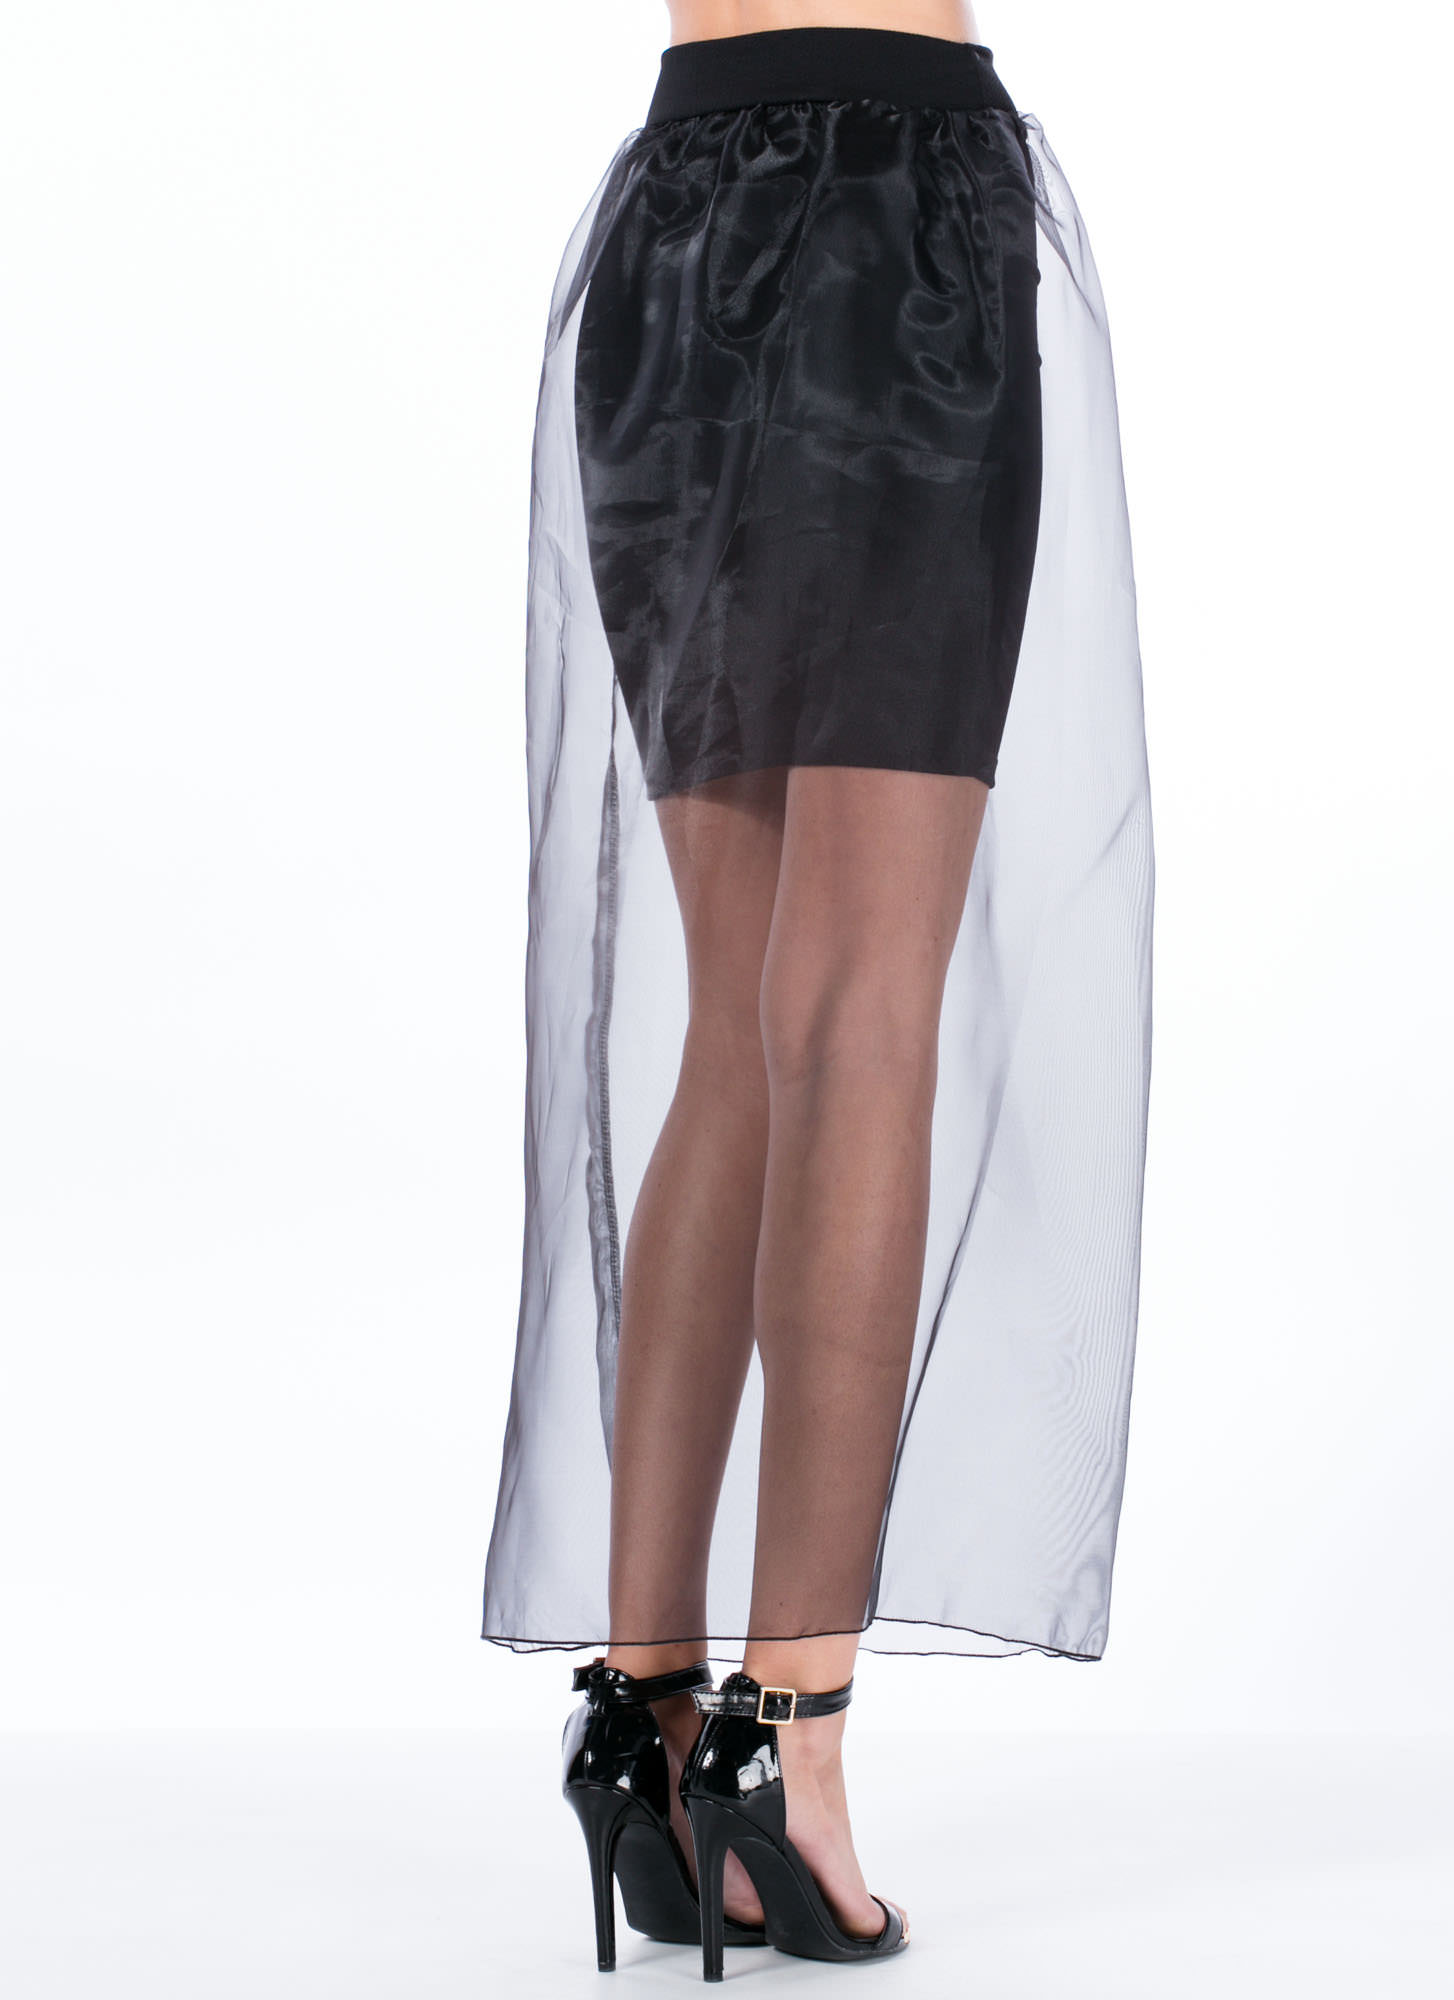 Sheer Perfection Organza Overlay Skirt BLACK (Final Sale)